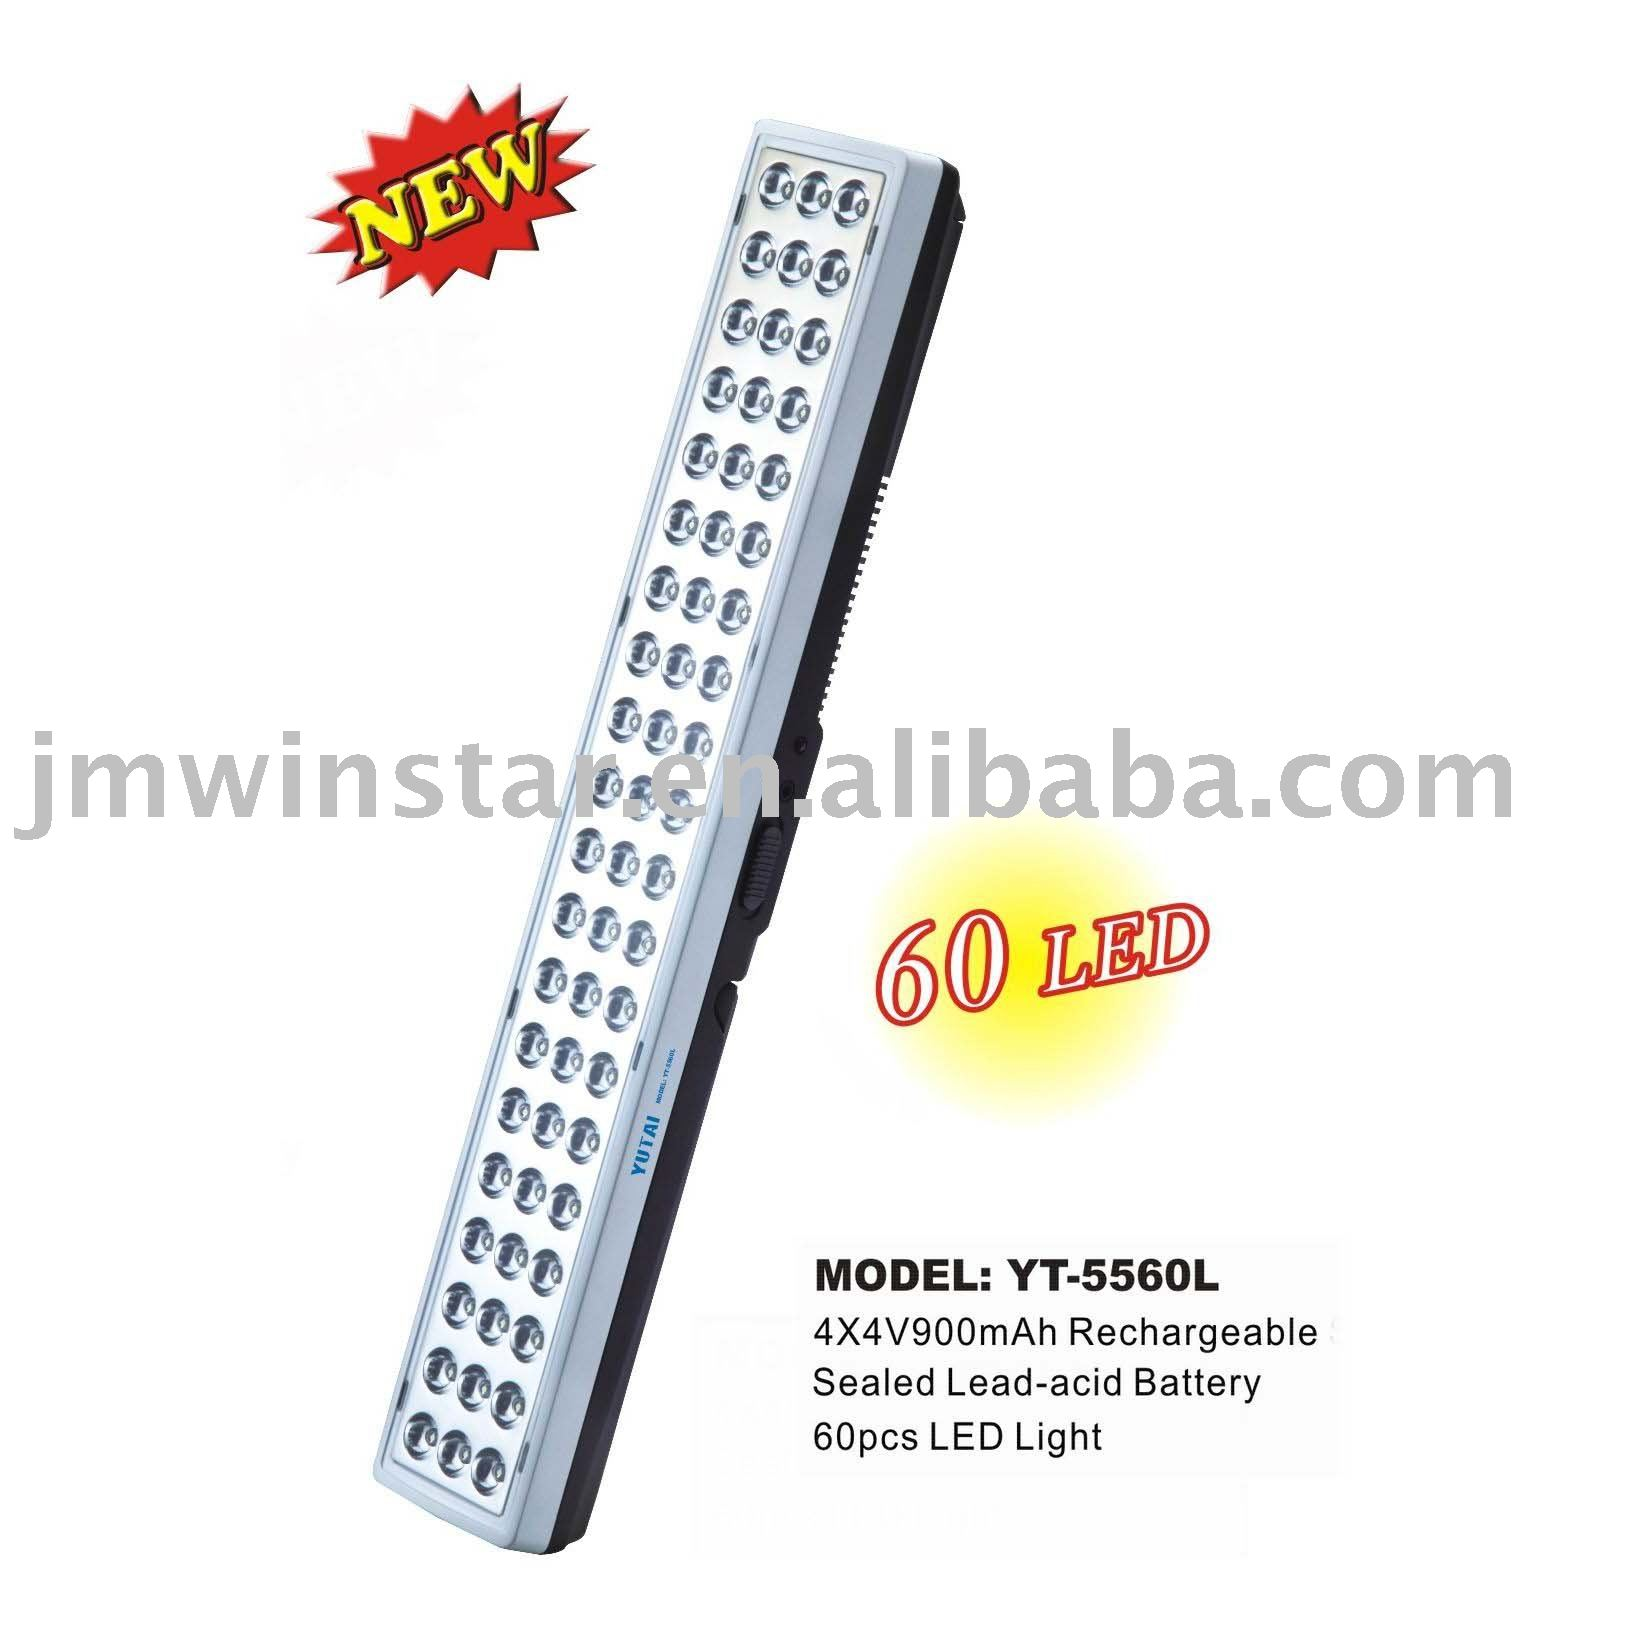 Yt-5560l Rechargeable Lamp: 60 Led Light & Wall-mounted Emergency ...